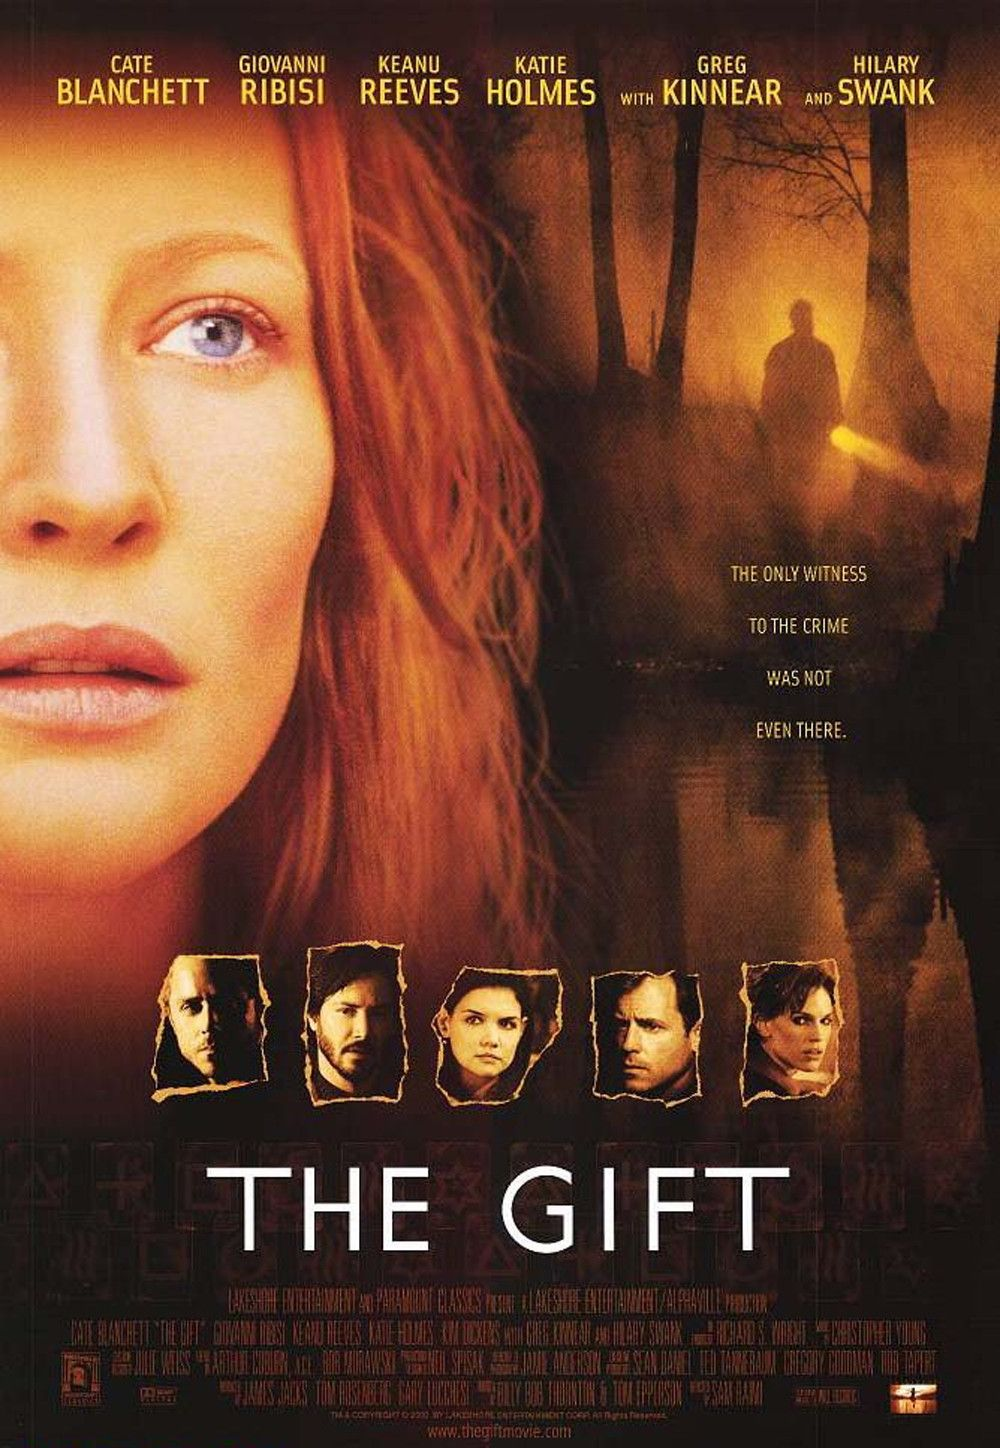 The Gift (2000) - Amazing cast. Some bad accents and a rough ...